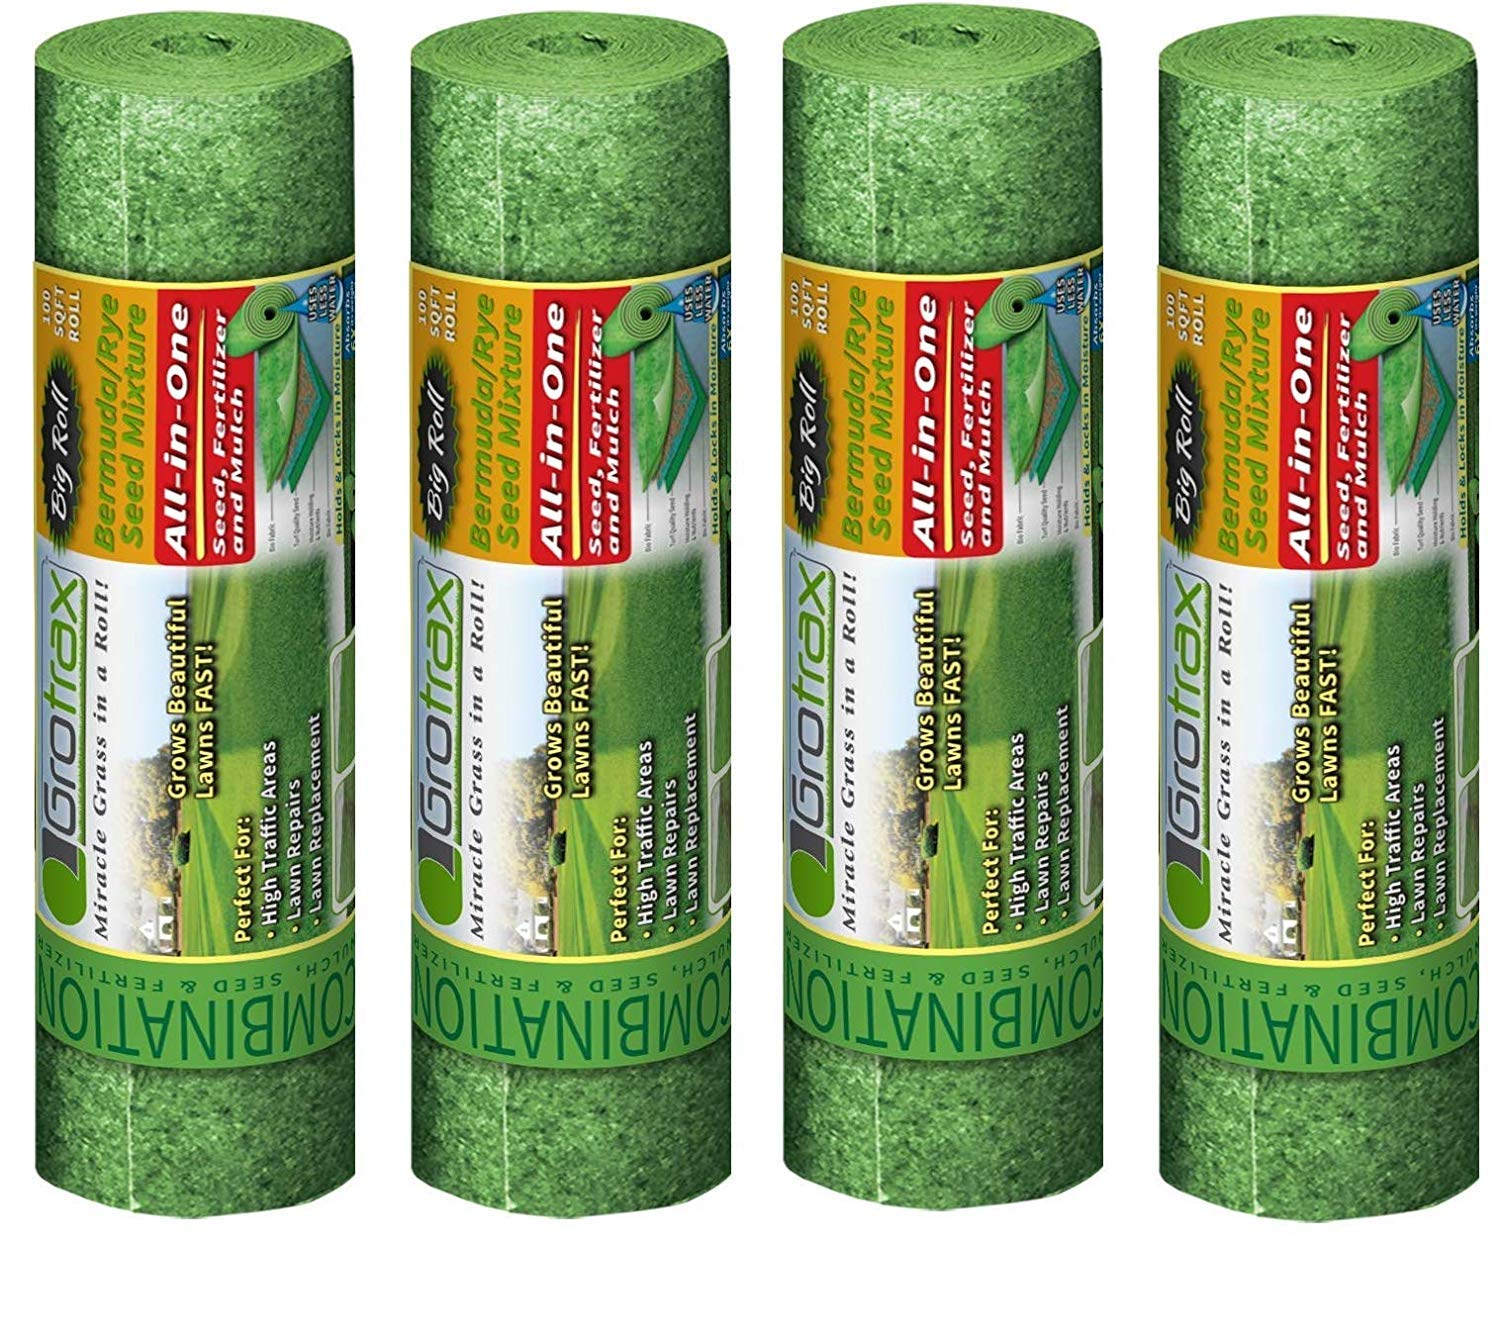 Grotrax | Big Roll | All-in-One Bermuda Grass Seed Mat Roll | Great for Lawn Spots, High Traffic Areas and Lawn Repairs | Ideal for Hot and Drought Conditions | As Seen On TV | 100 SQFT (Fоur Расk)